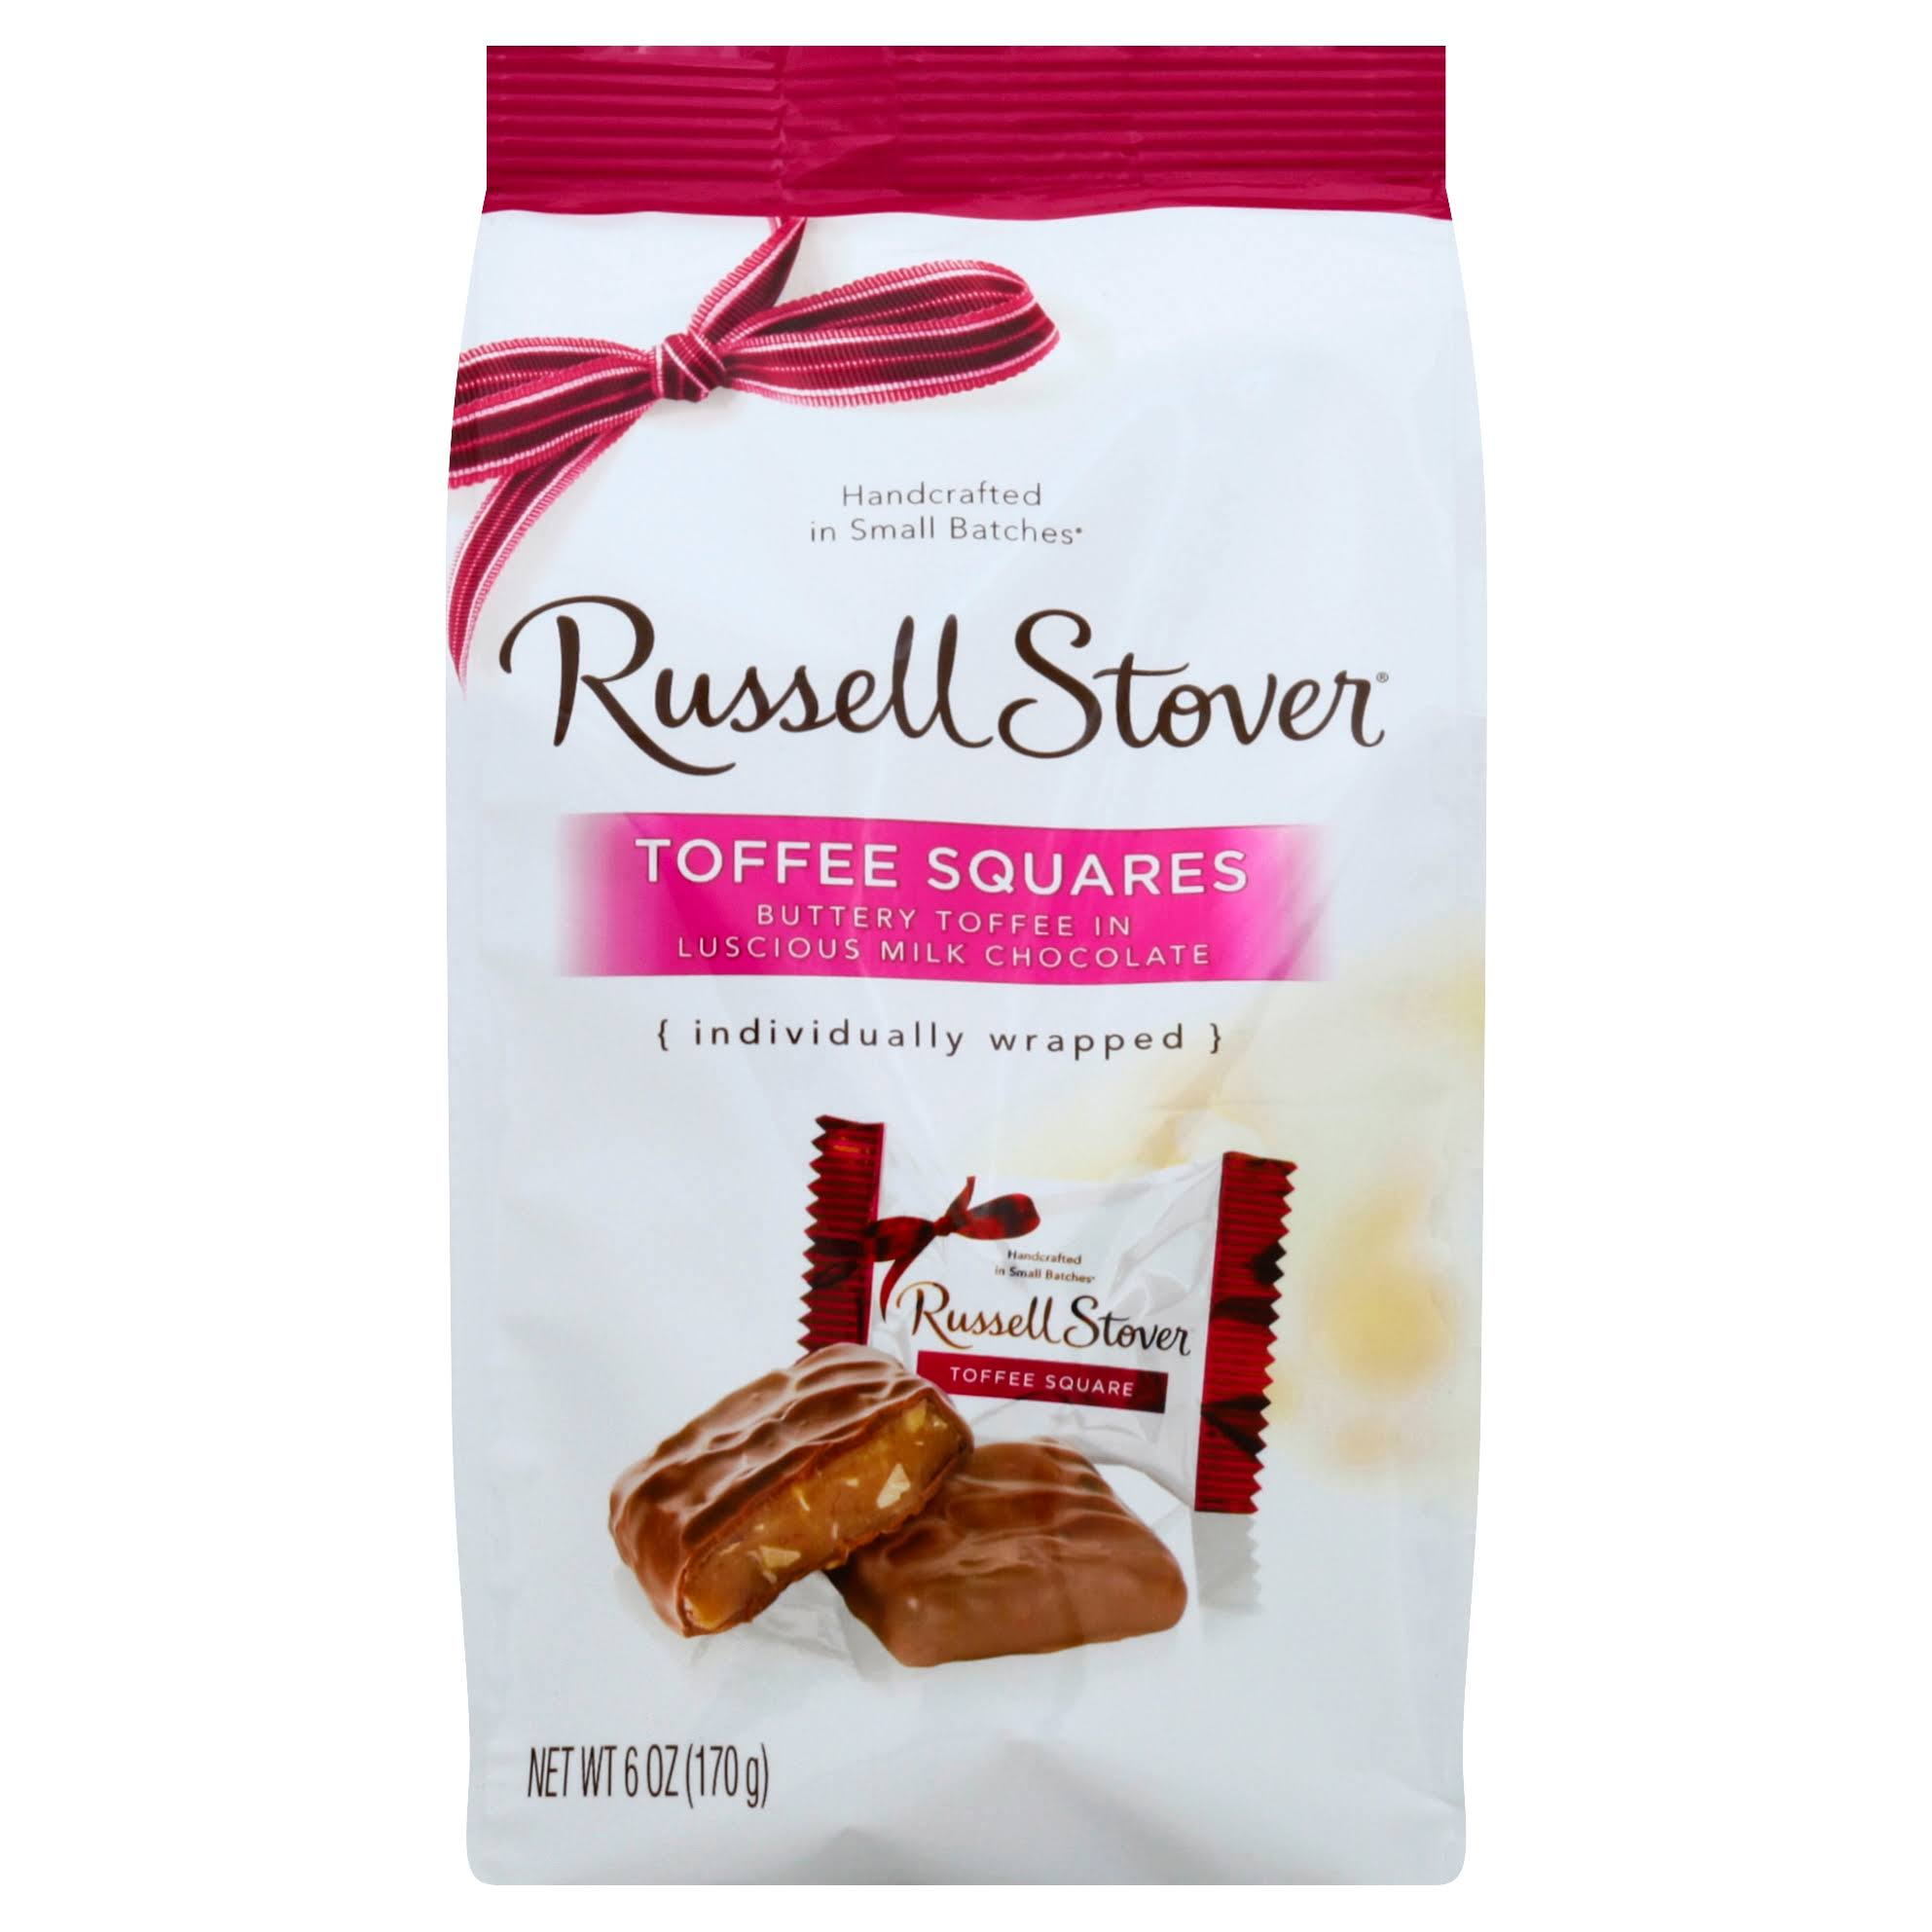 Russell Stover Toffee Squares - 6 oz